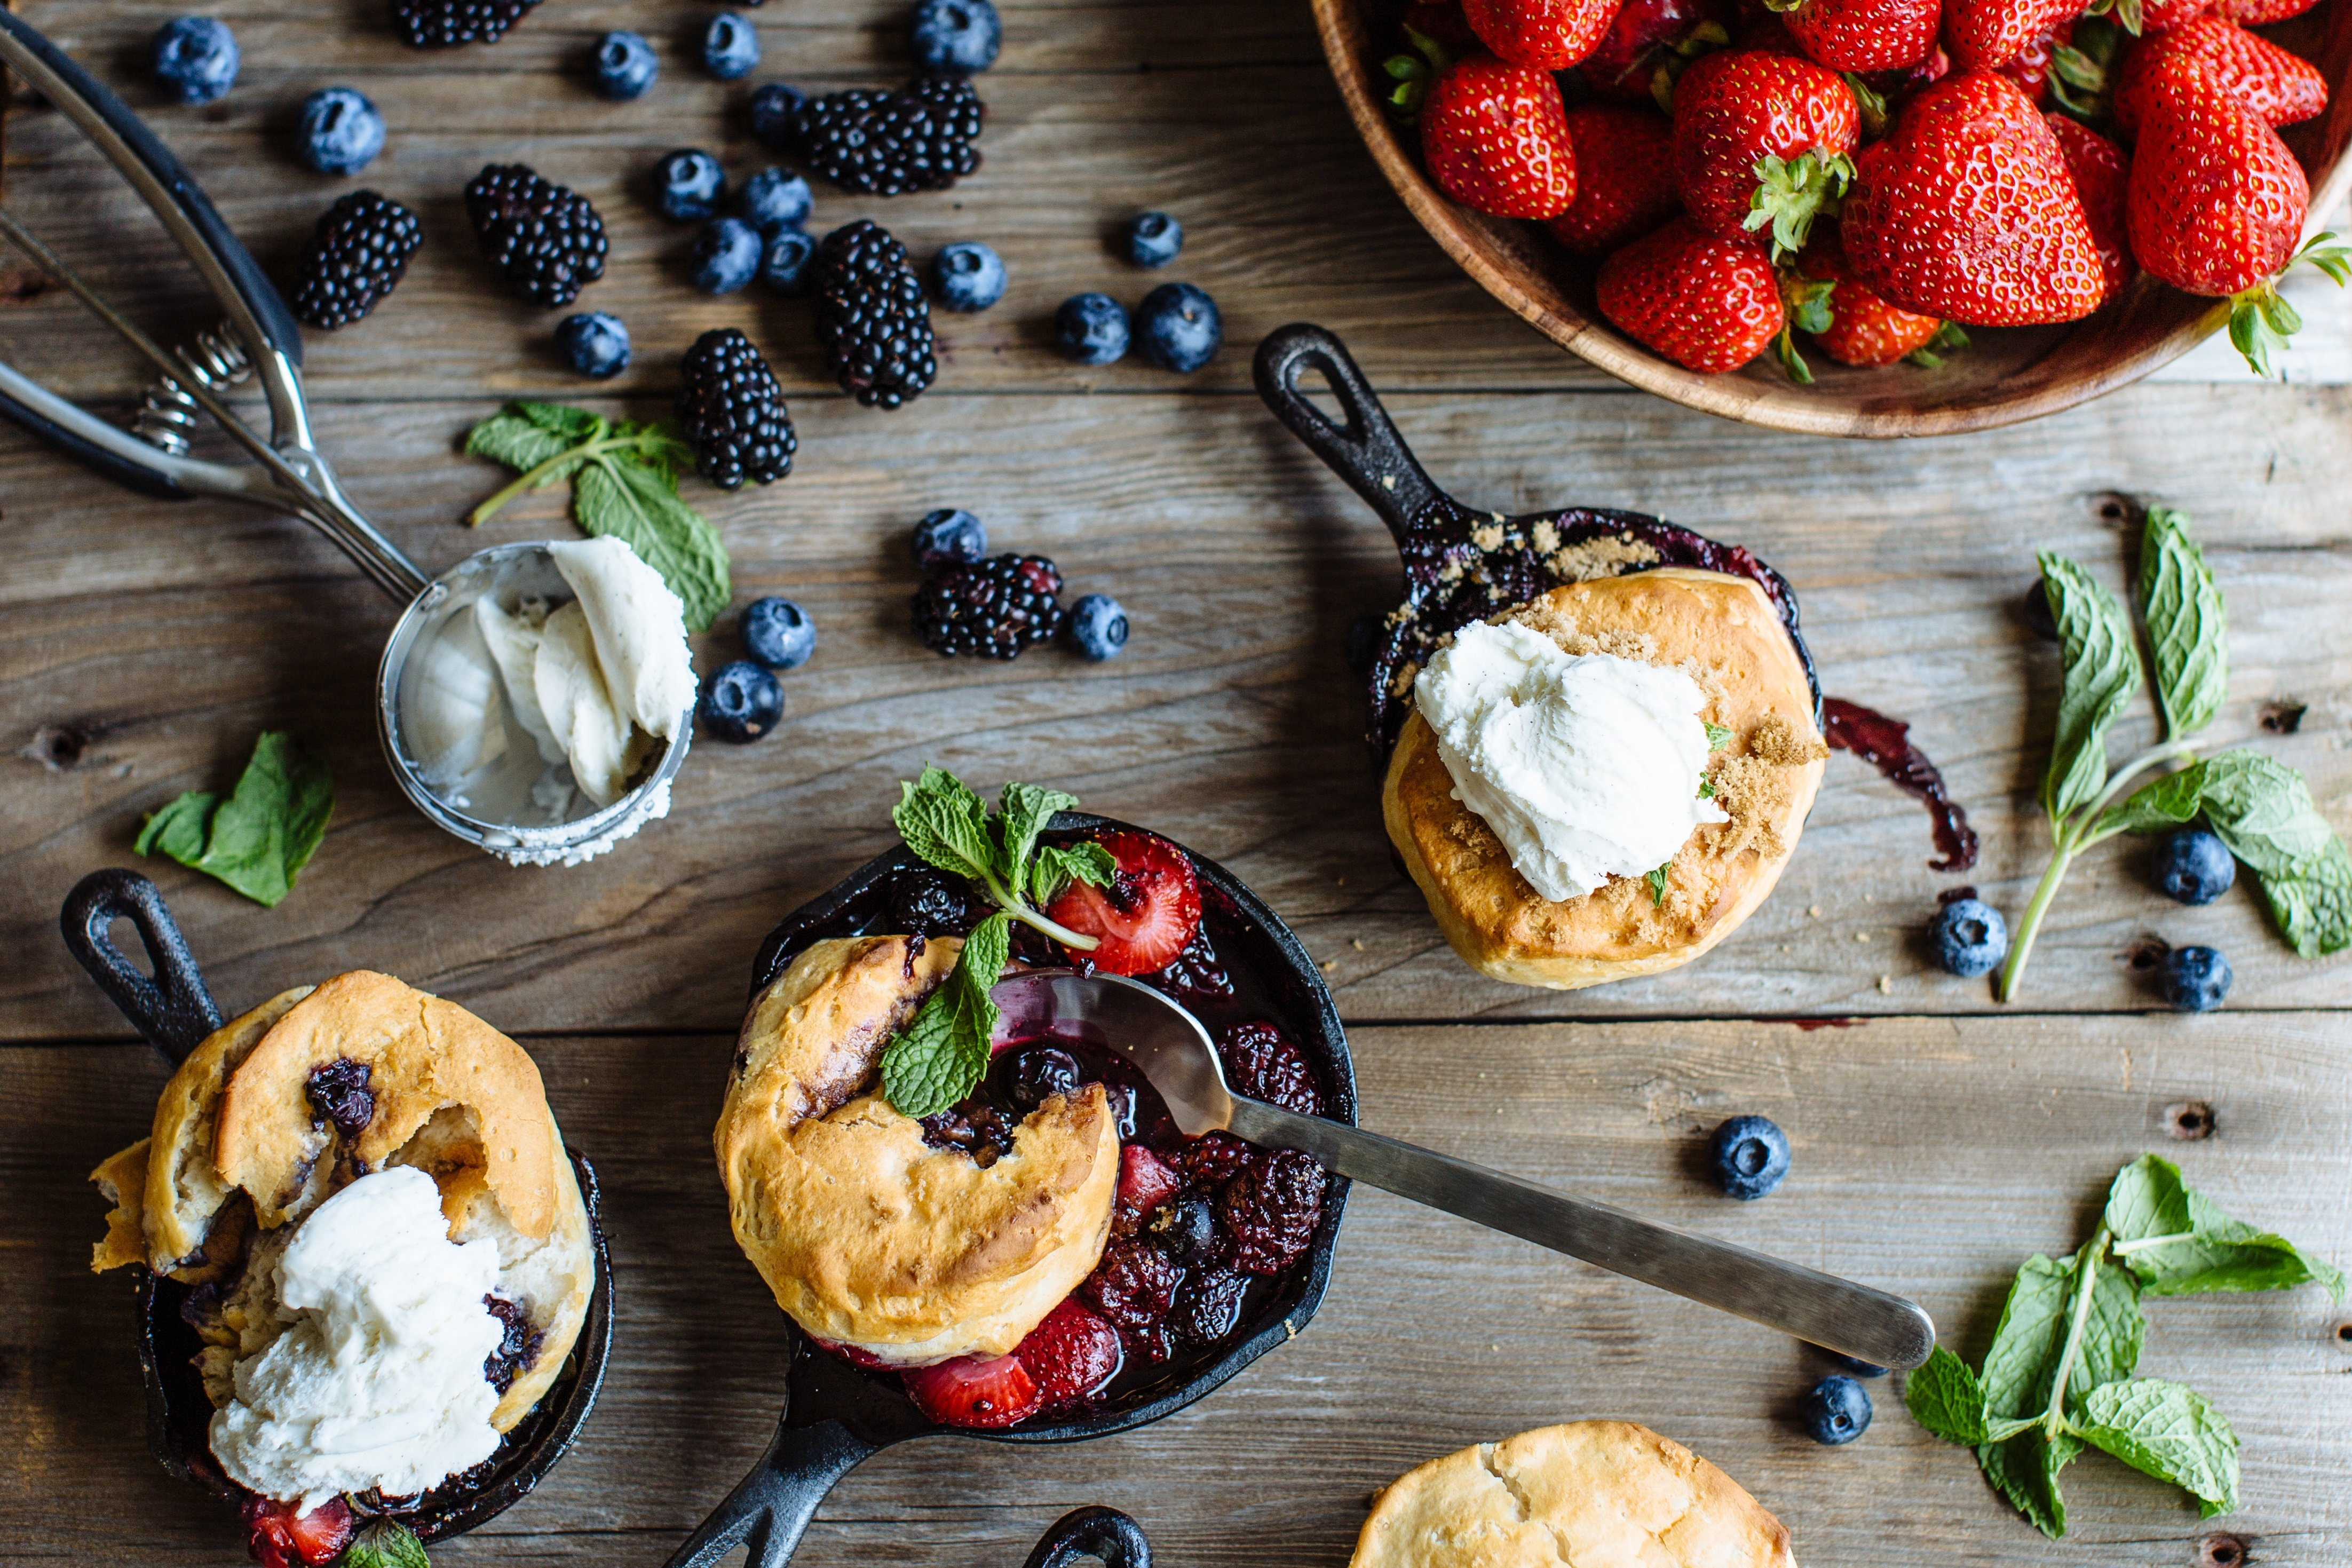 Biscuits and Berries